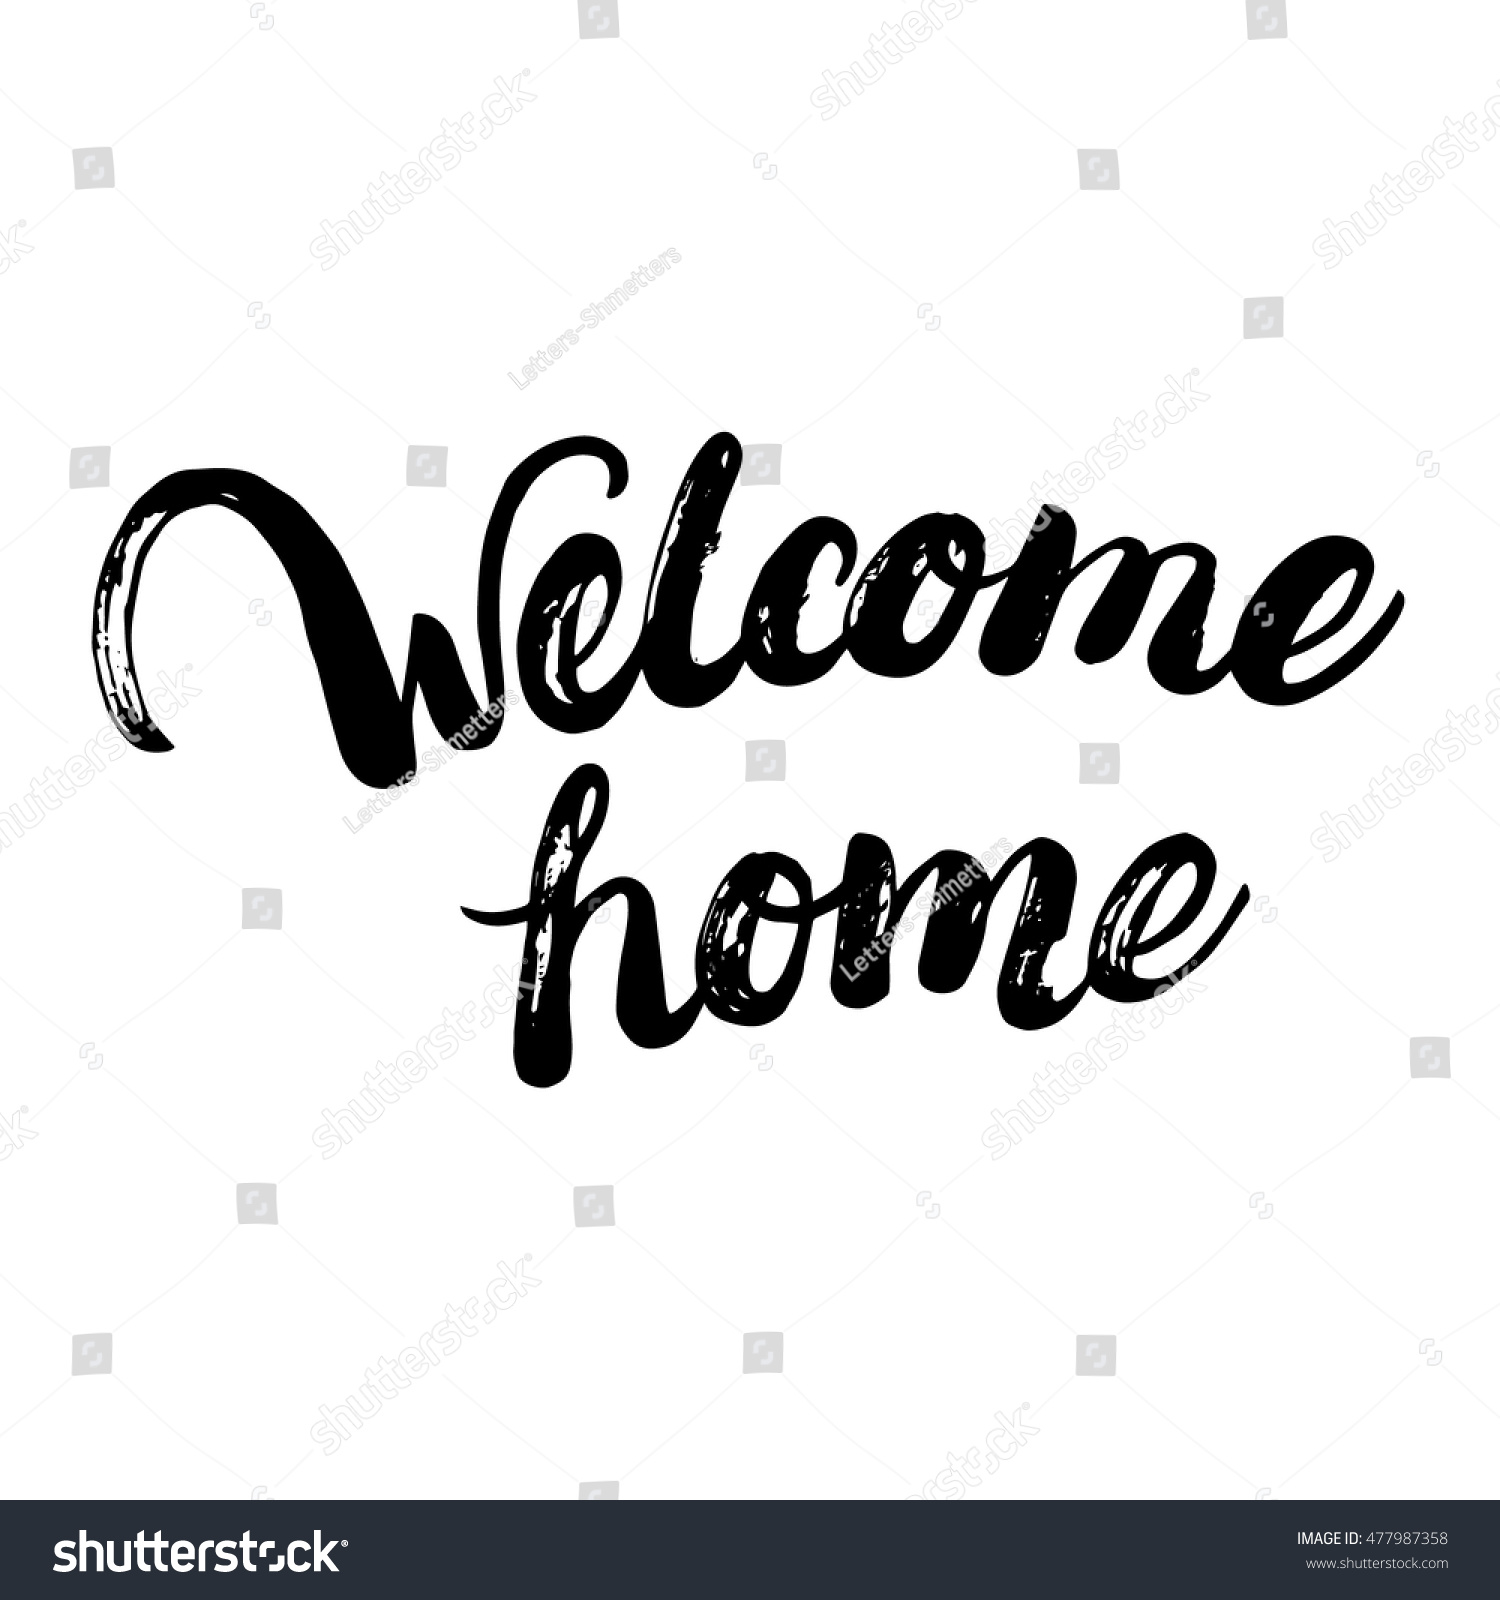 Welcome home hand written calligraphy lettering stock